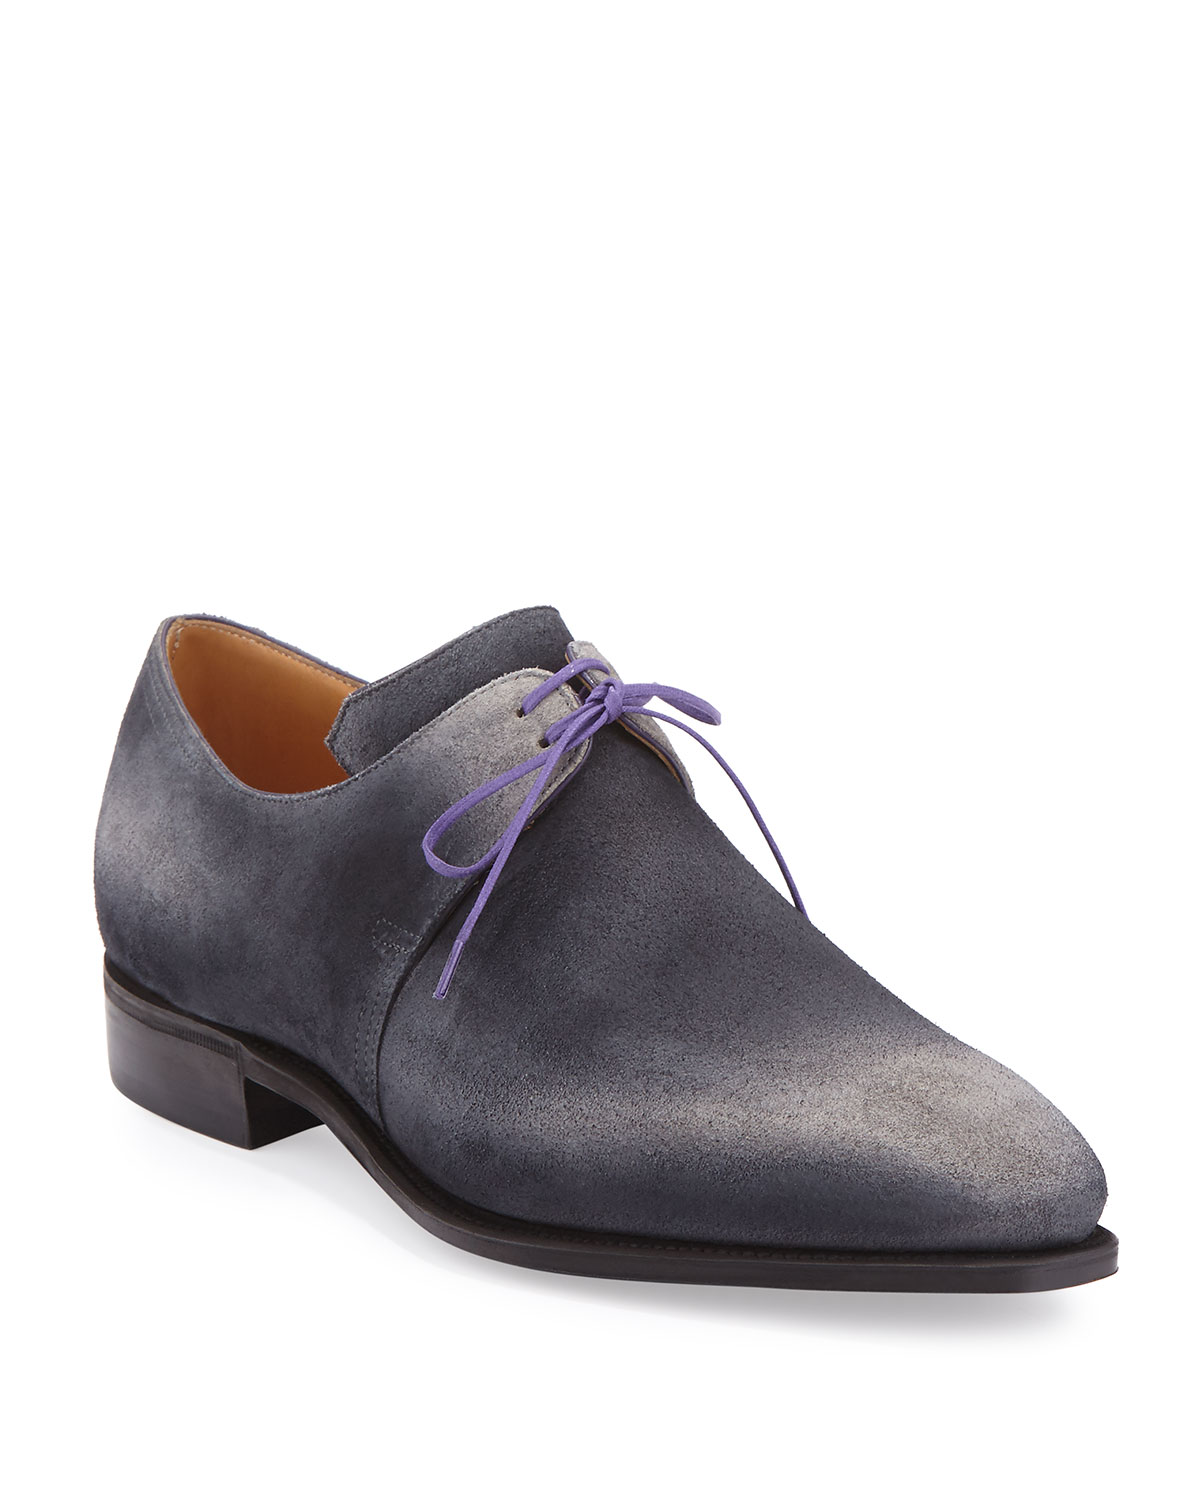 532b8e1b2fa Corthay Arca Suede Derby Shoe with Flint Patina   Purple Piping ...